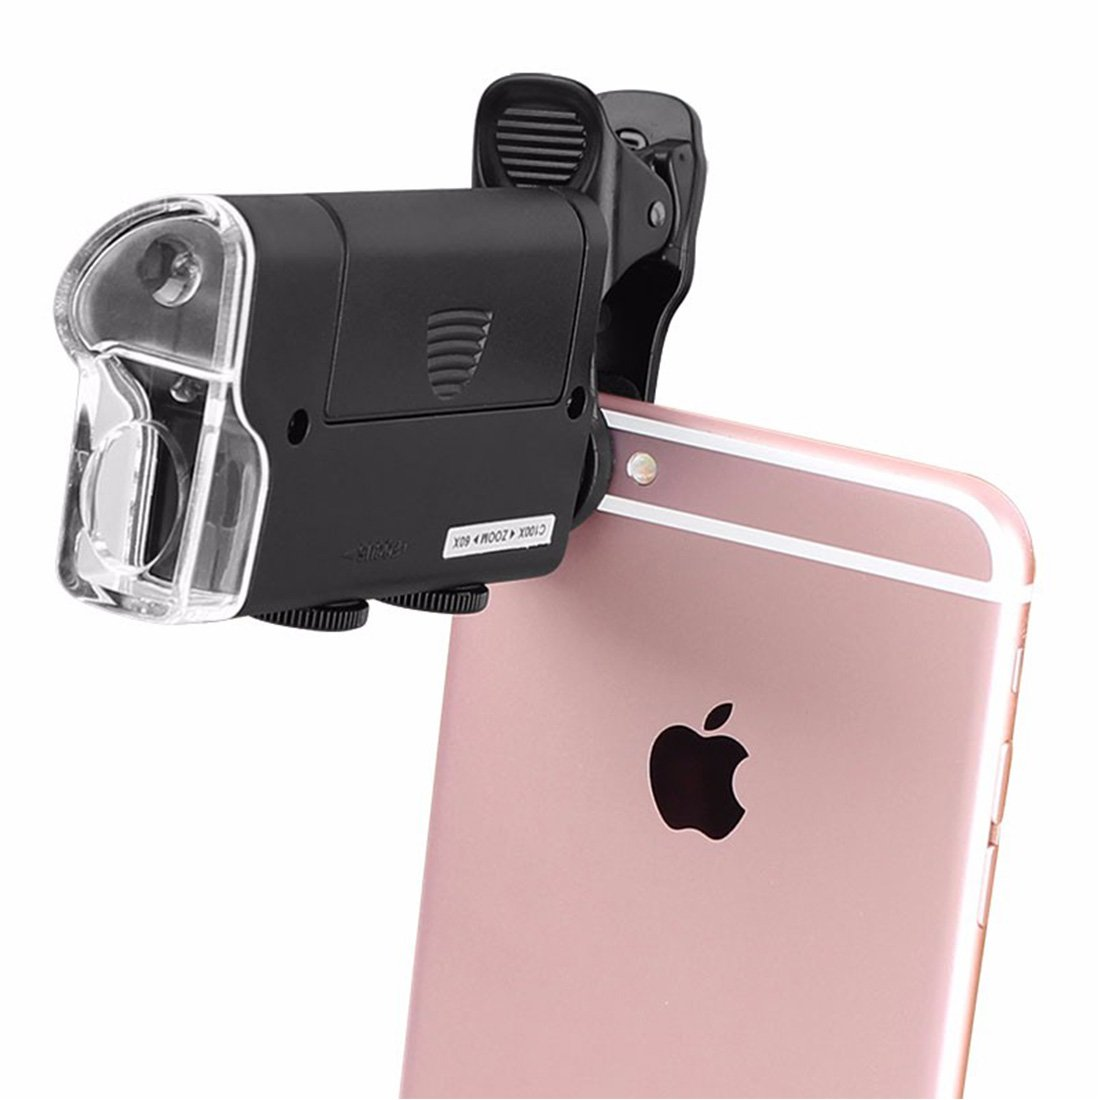 Universal Mobile Phone Microscope Macro Lens 60/100 X Optical Zoom Magnifier Micro Camera Clip LED Lenses for iPhone SE 5S 6S Plus DBS